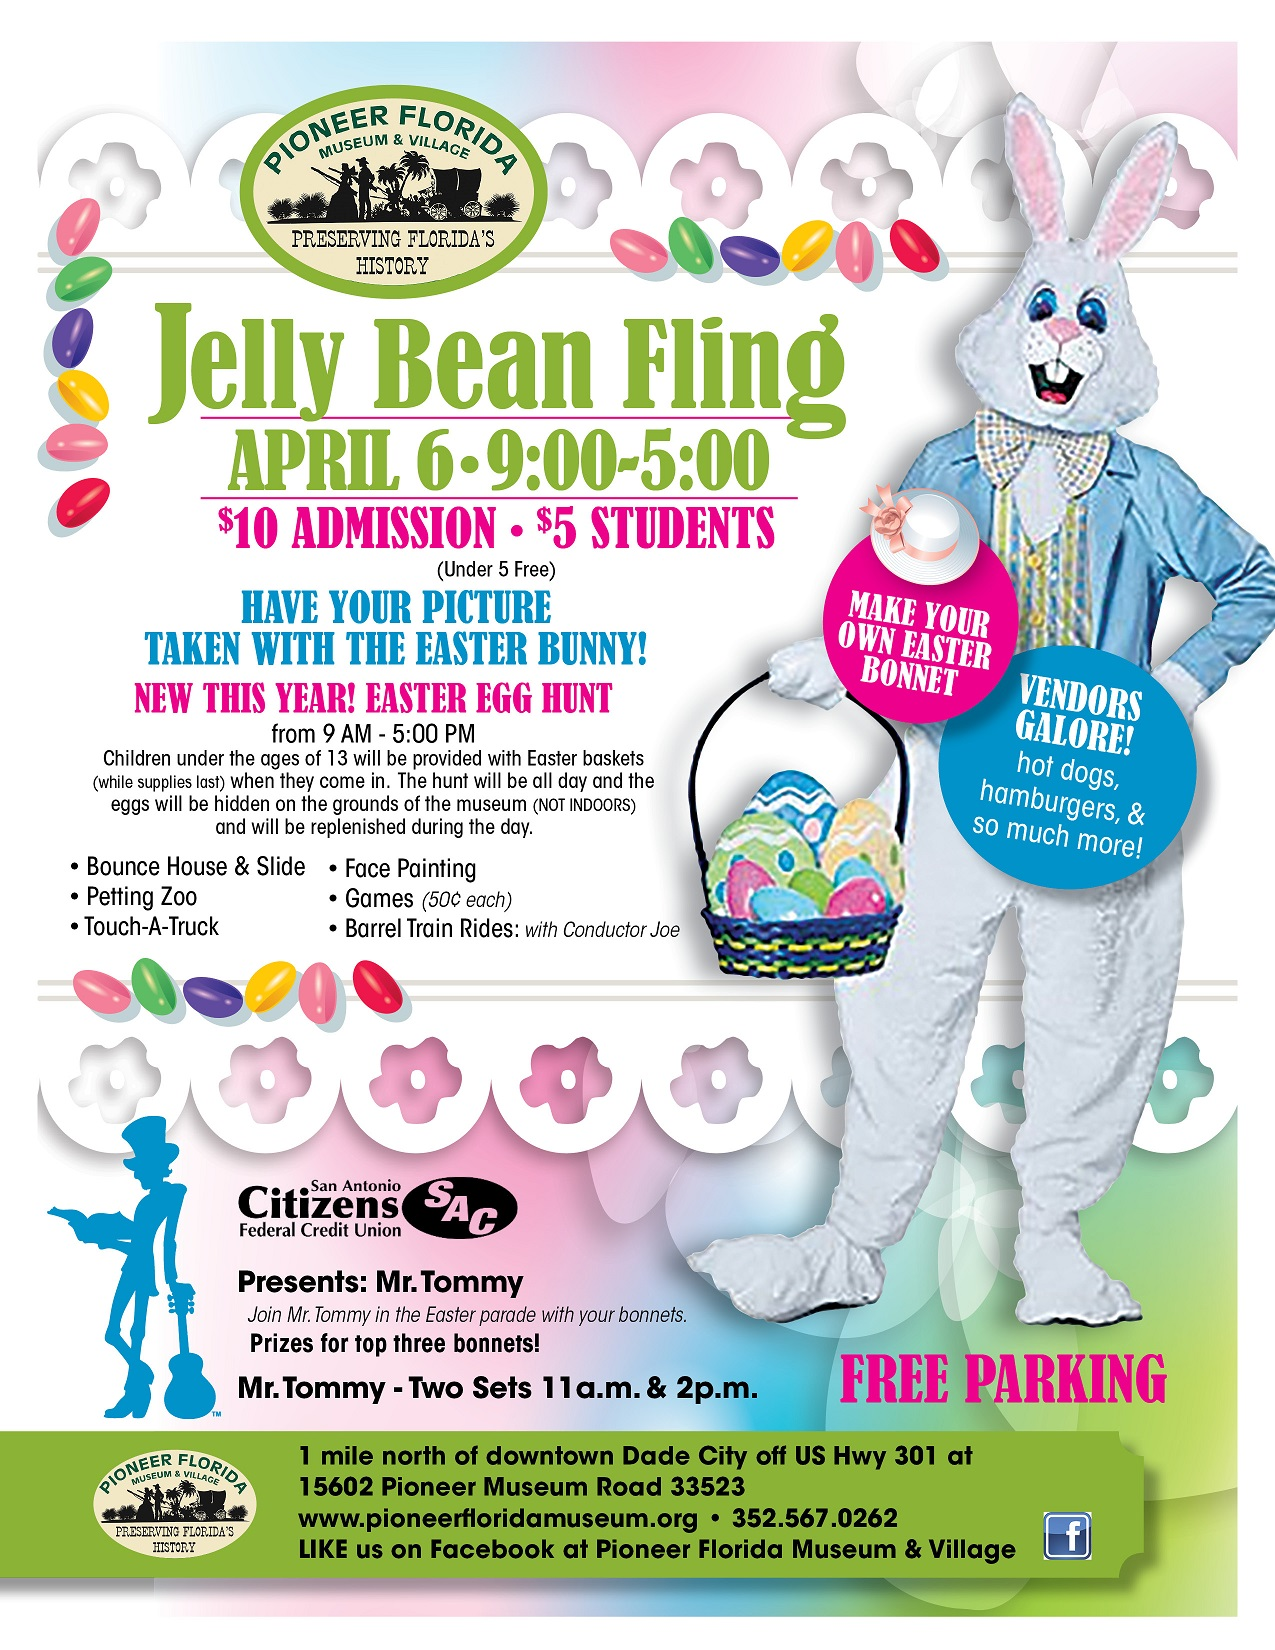 Jelly Bean Fling 2019 small